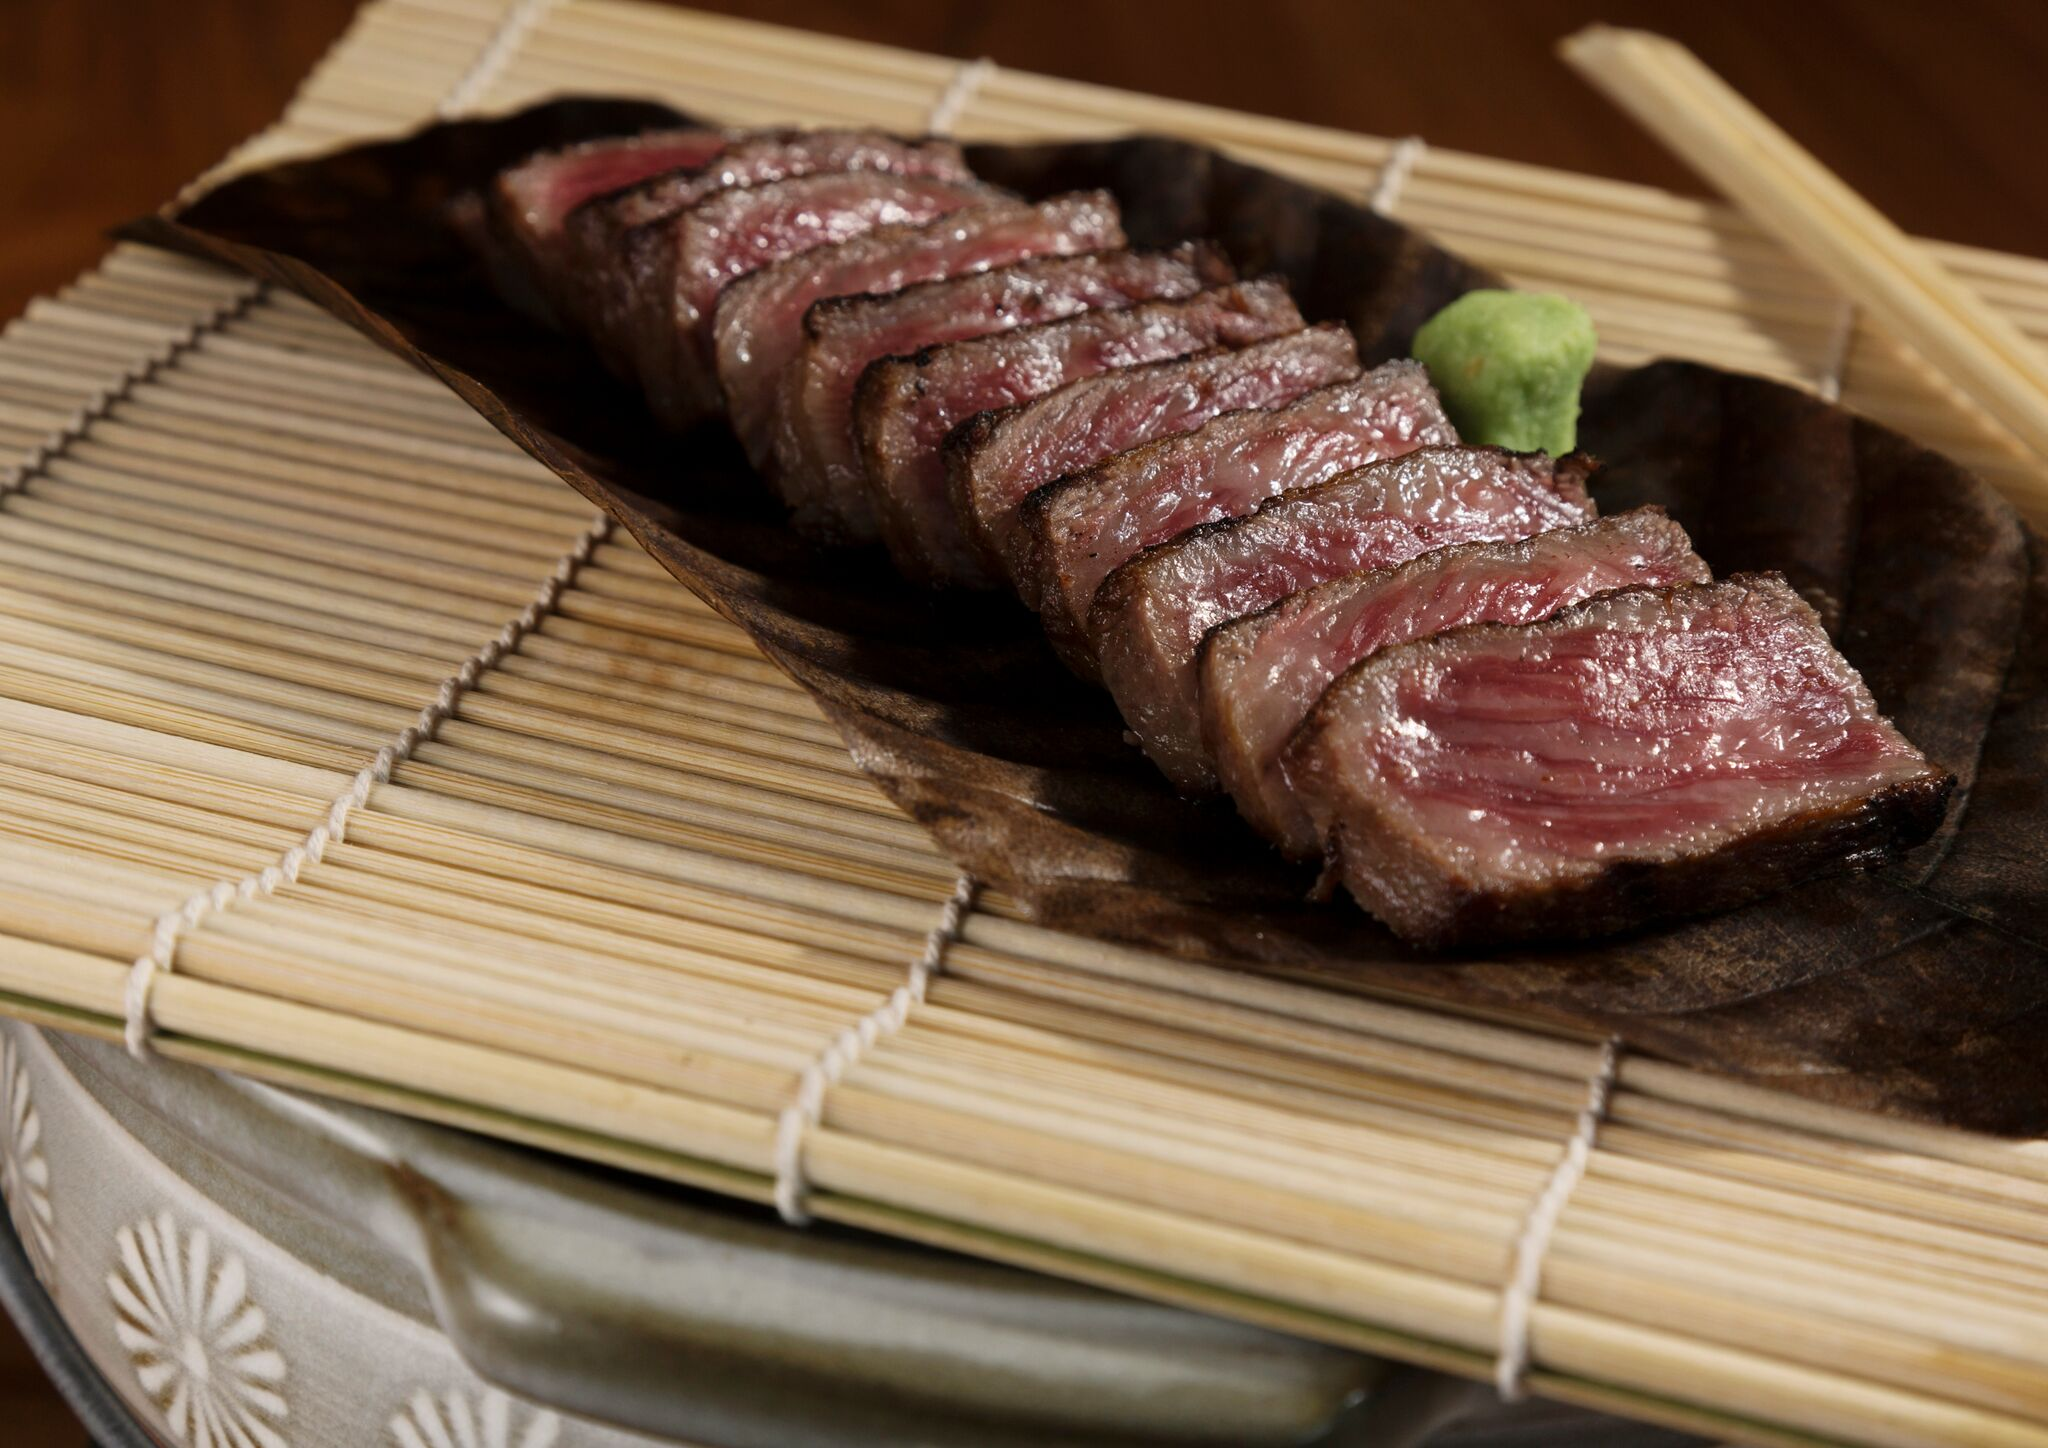 Photo of steak on a bamboo mat.